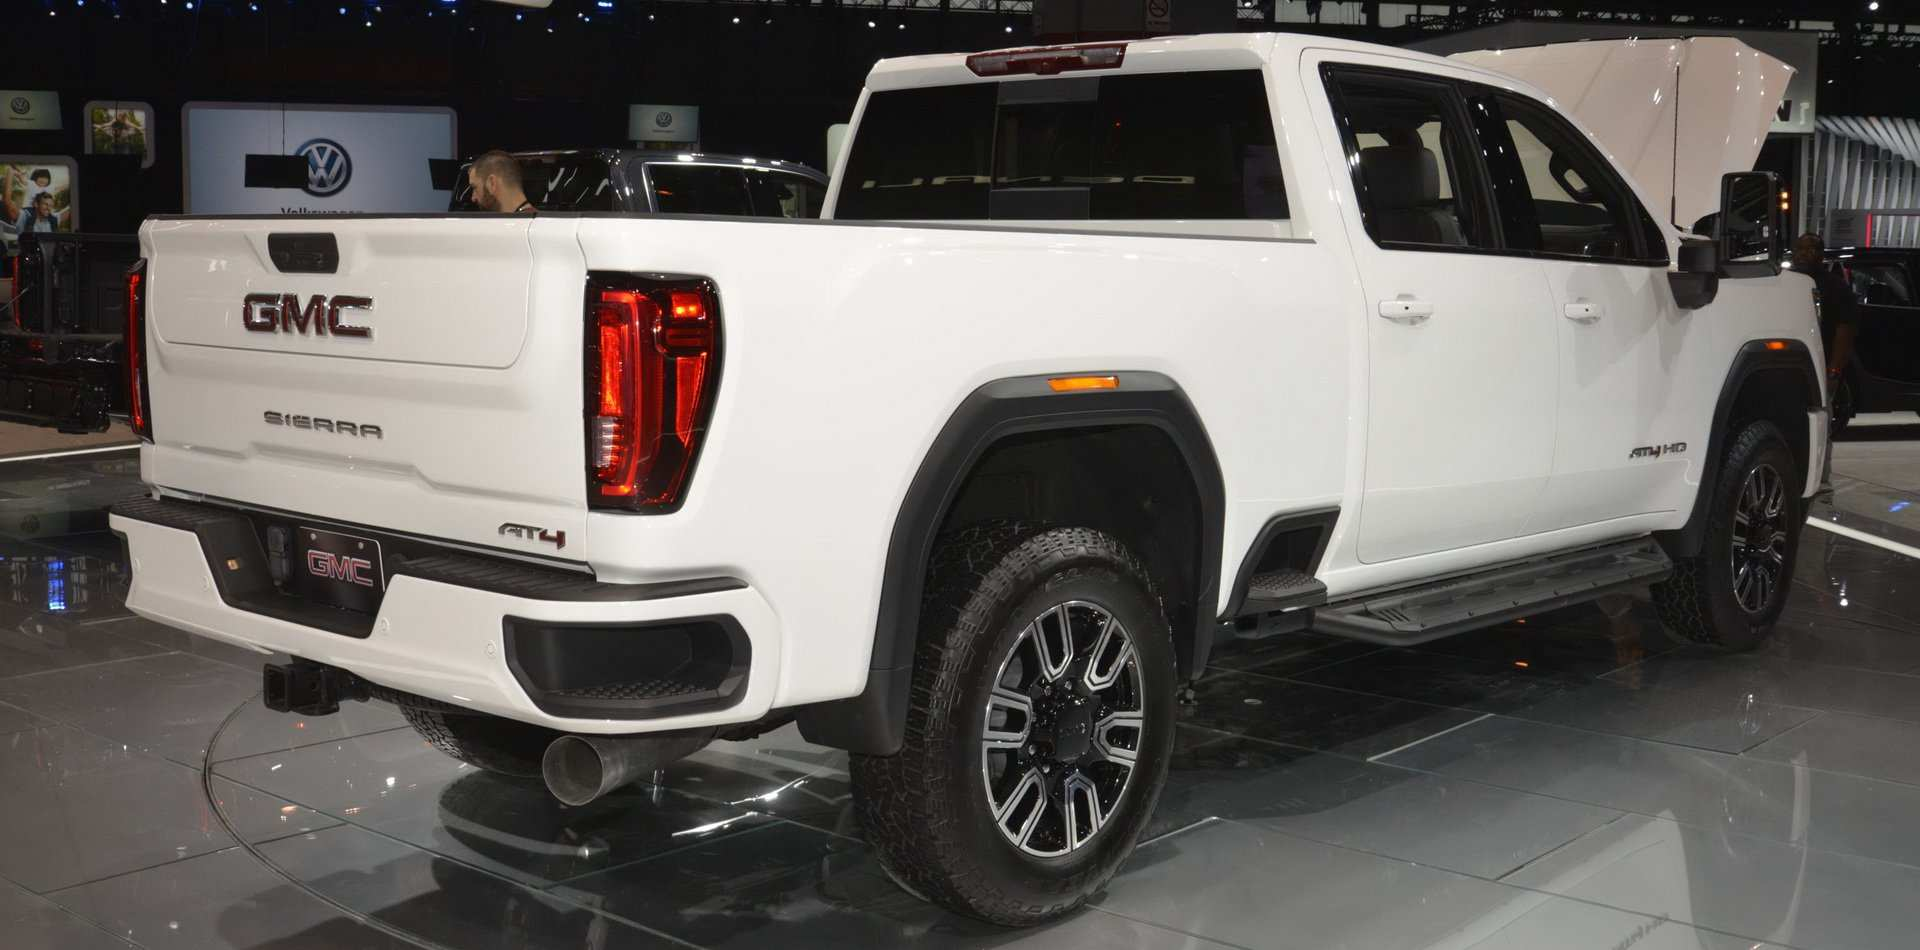 59 All New GMC At4 Diesel 2020 Configurations